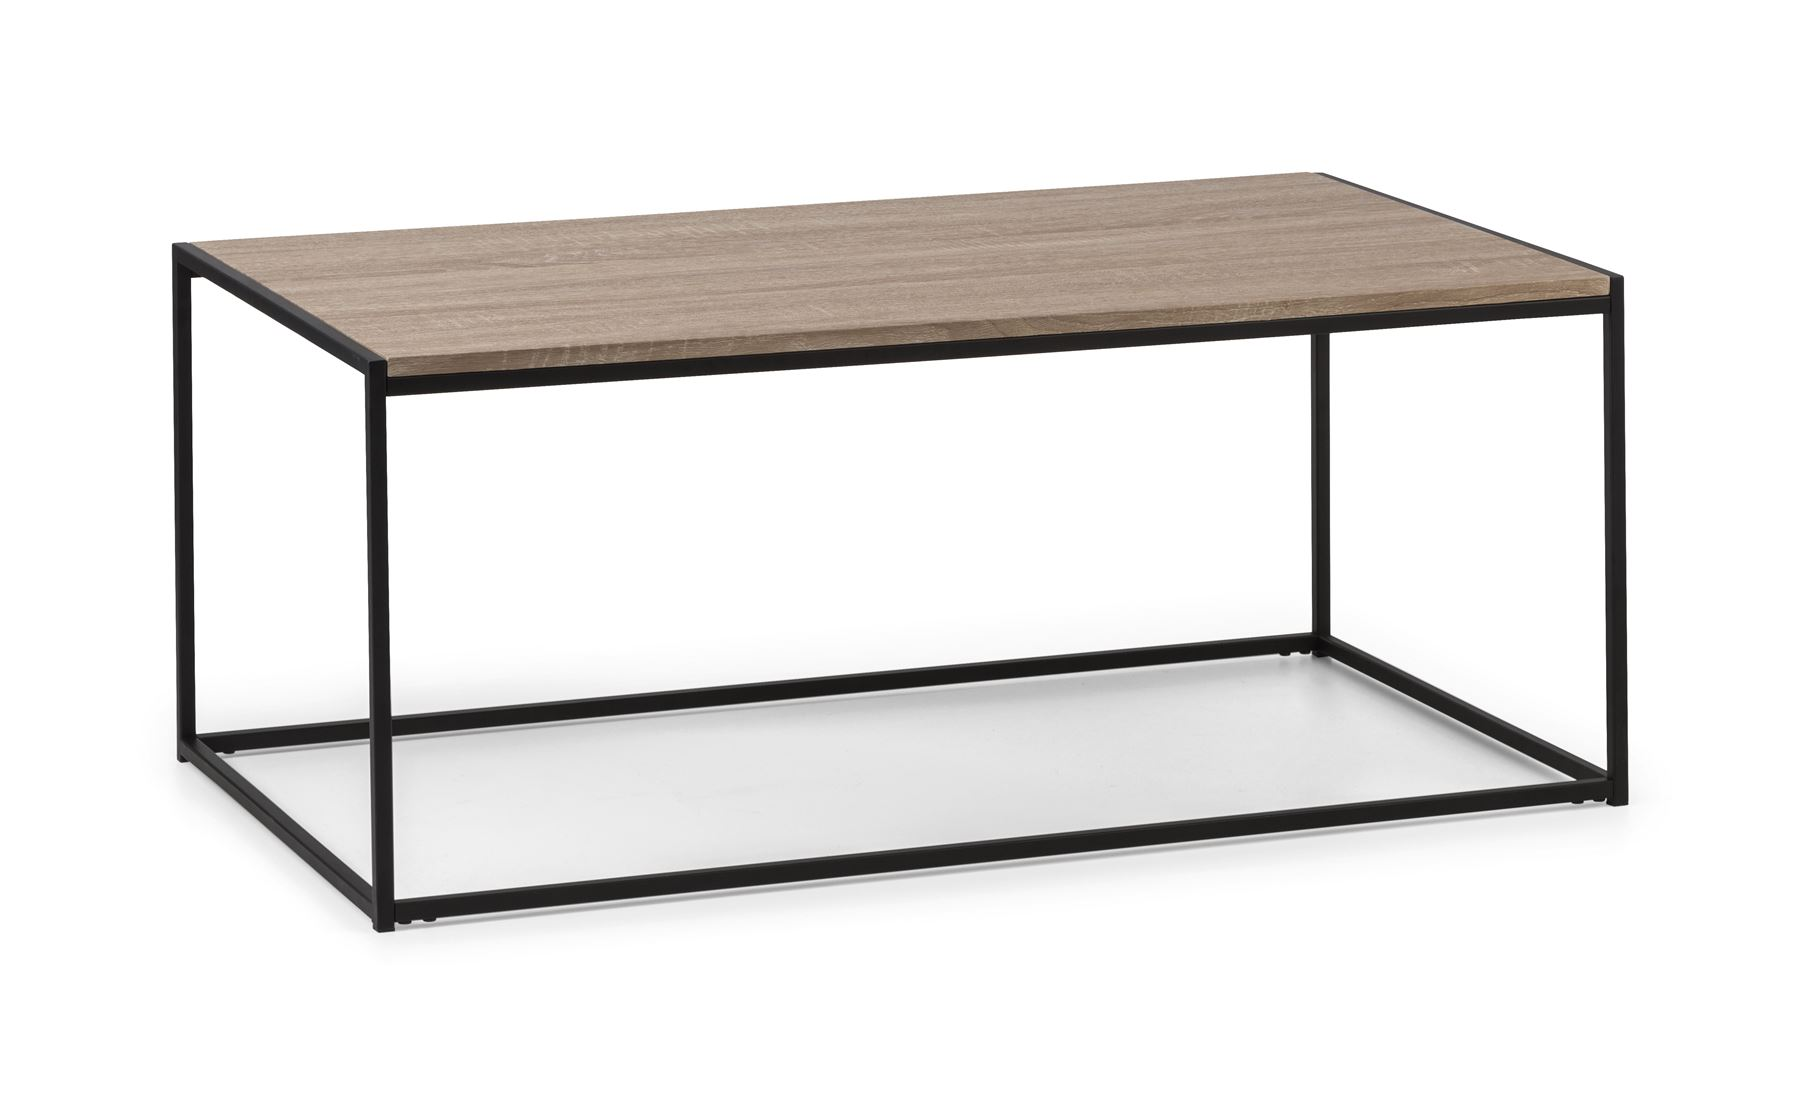 julian bowen tribeca black metal oak industrial steel rectangular coffee table ebay. Black Bedroom Furniture Sets. Home Design Ideas